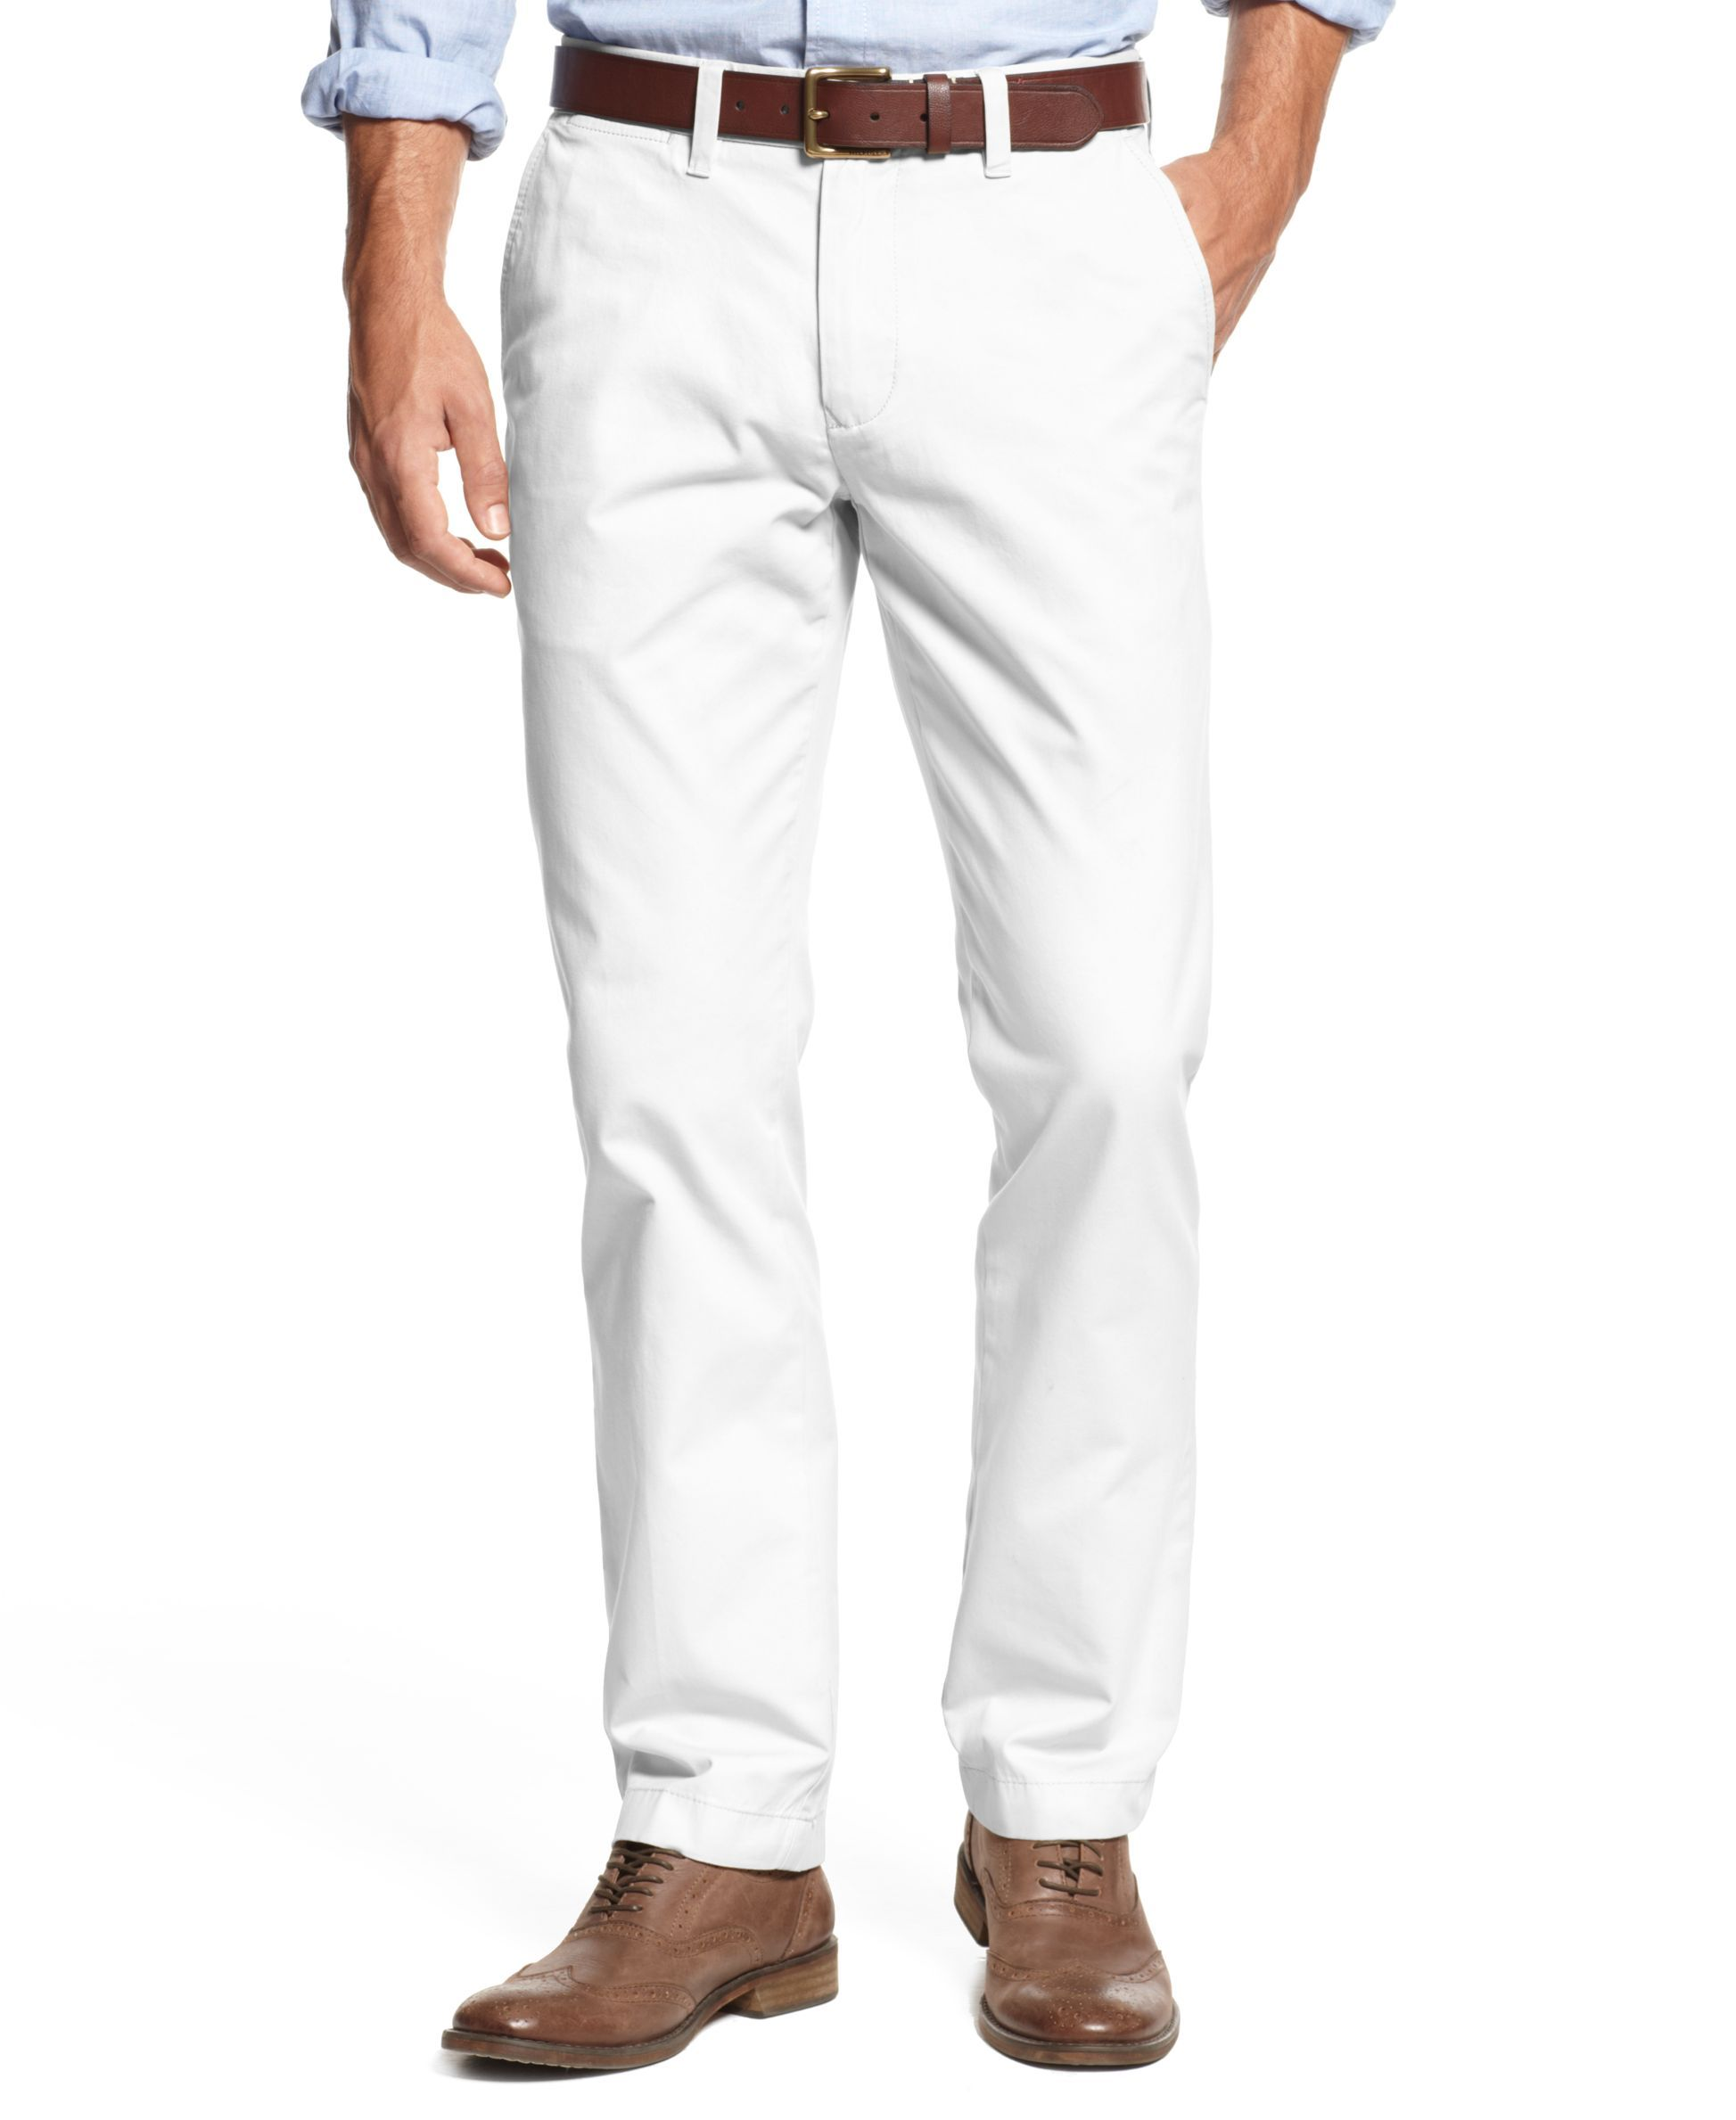 c516cdb87 Men's TH Flex Stretch Slim-Fit Chino Pants, Created for Macy's ...